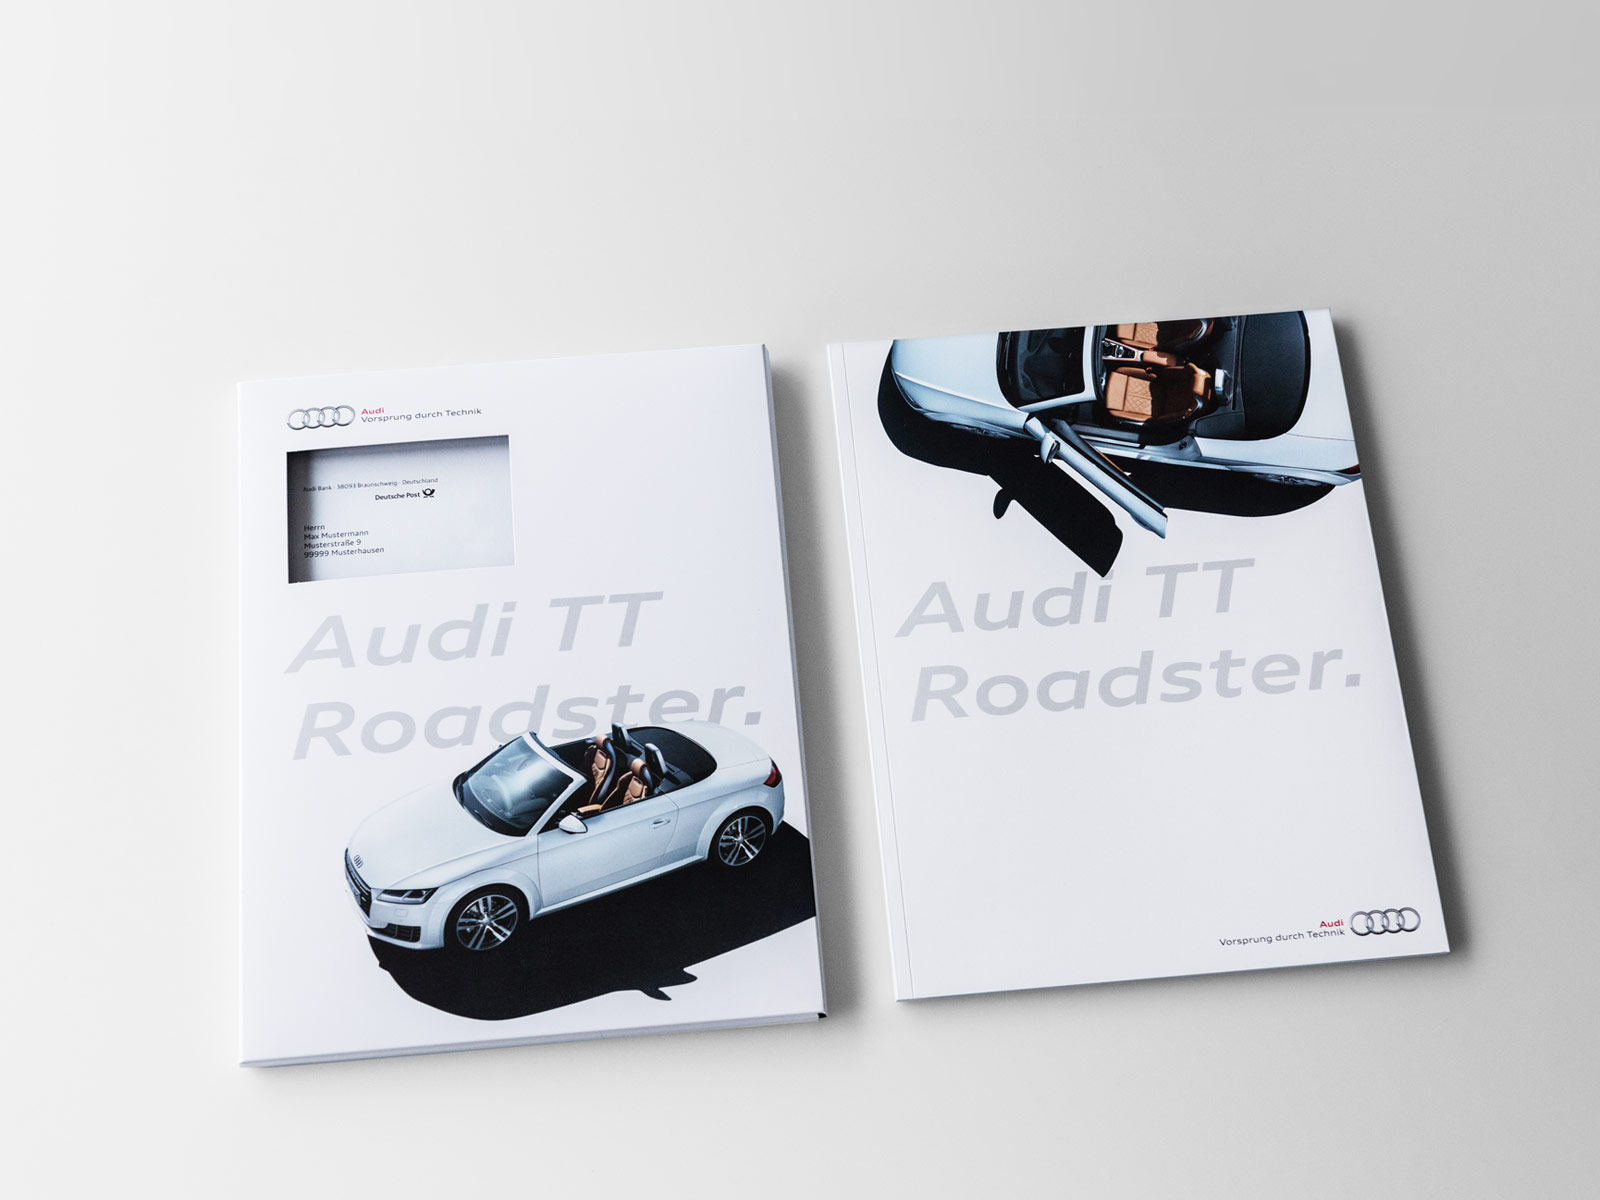 gingco_case_audi_tt_roadster_02.jpg